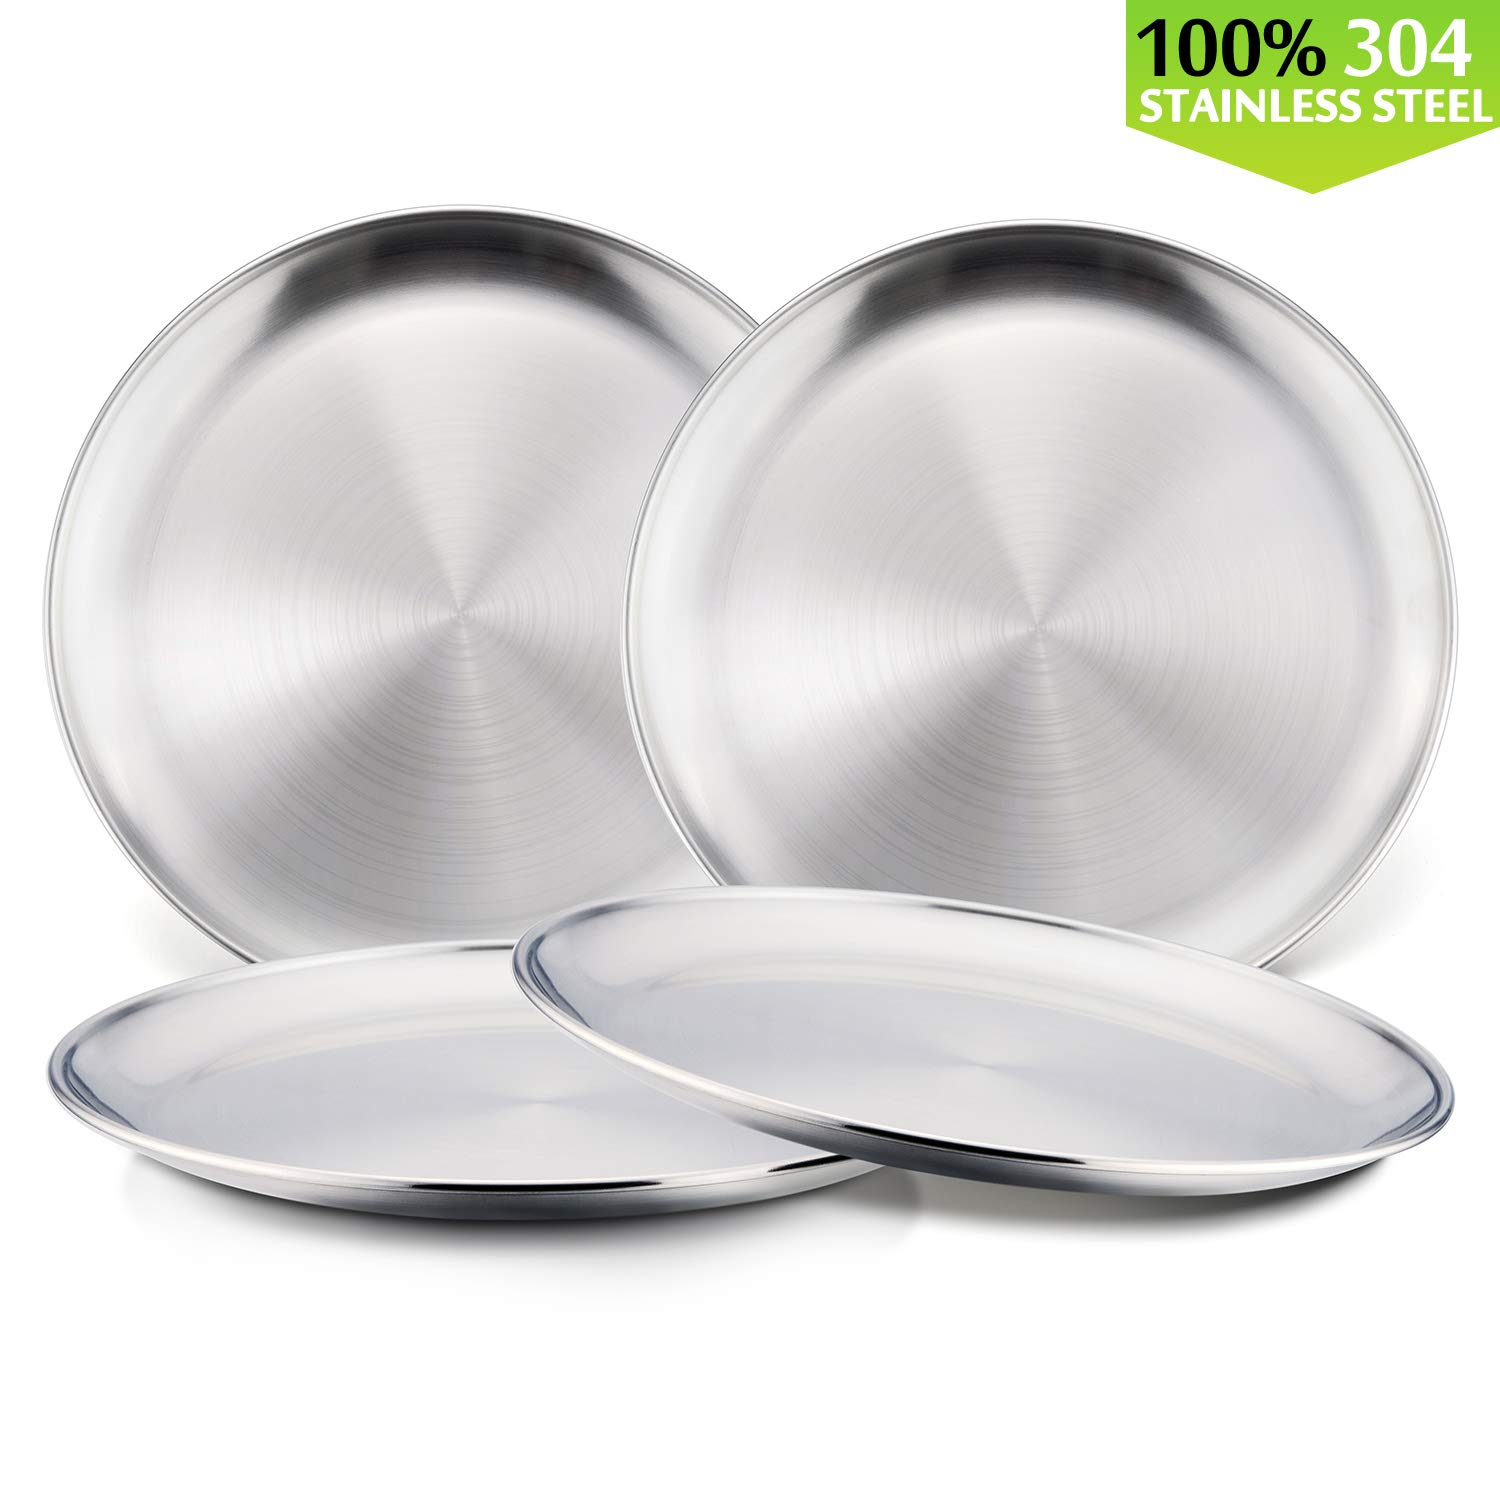 Toddlers Kids 18/8 Stainless Steel Plates, HaWare Eco Friendly Metal 304 Feeding Dinner Dishes for Serving/Snack/Camping, BPA-Free and Dishwasher Safe - 4 Pack by HaWare